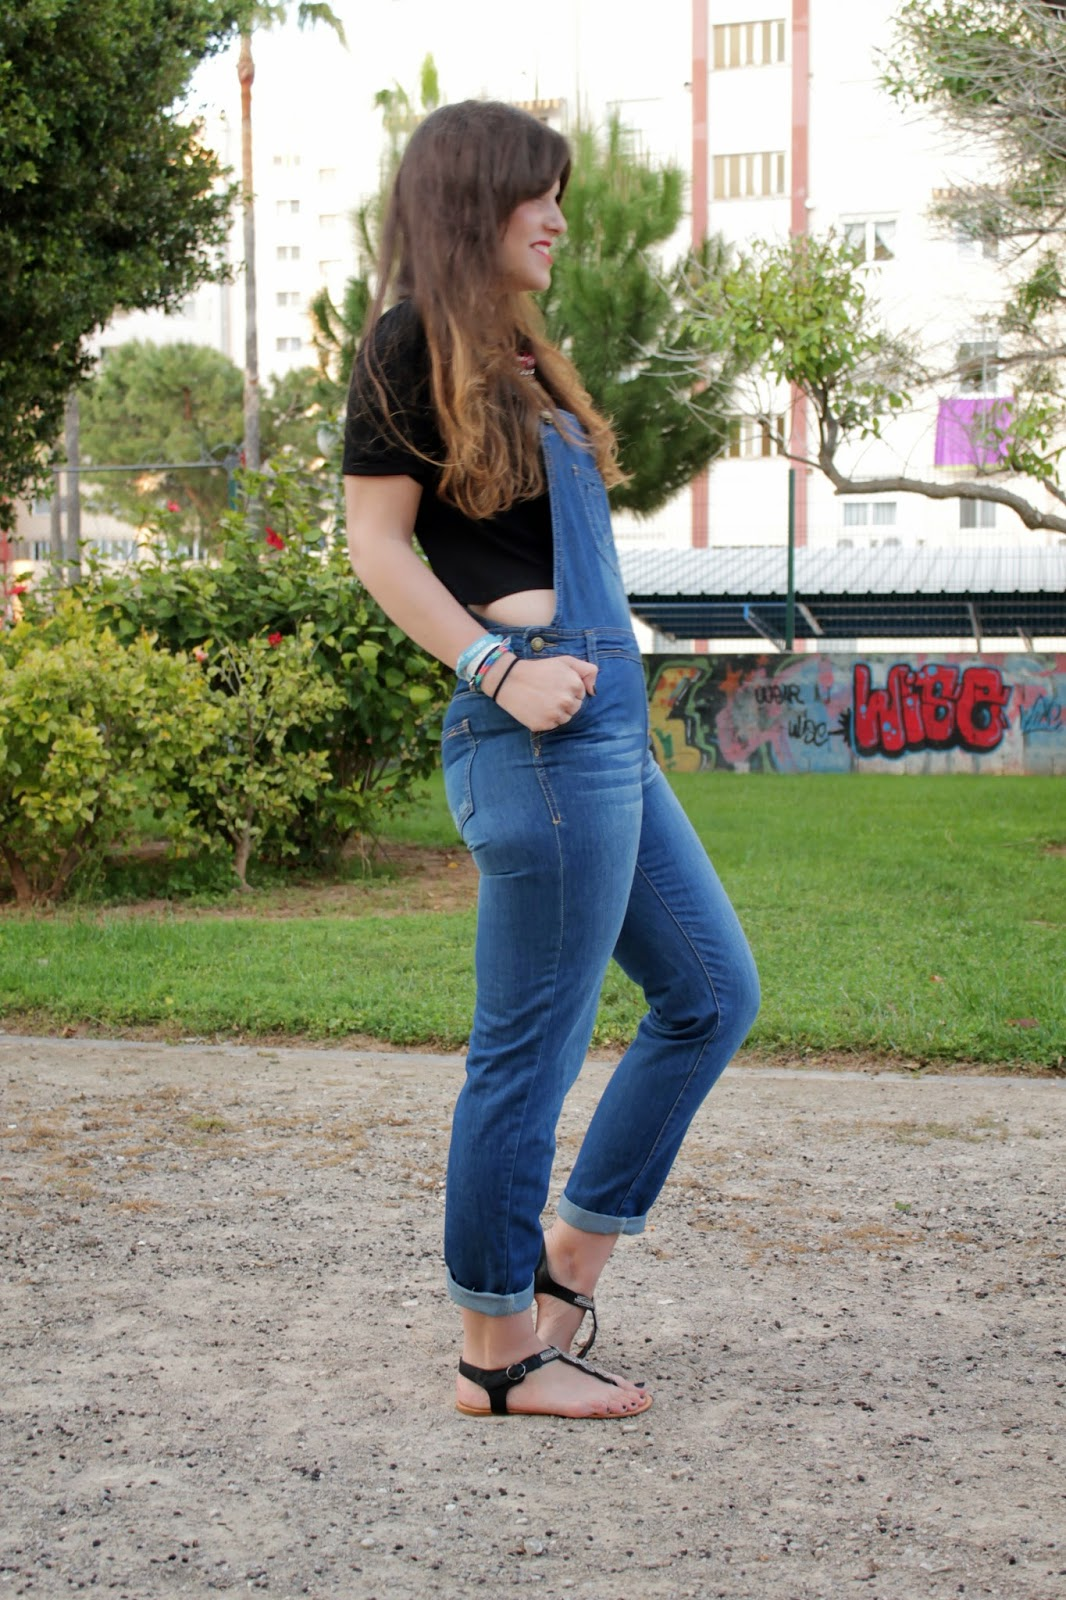 http://emedemeers.blogspot.com.es/2014/06/dungarees.html